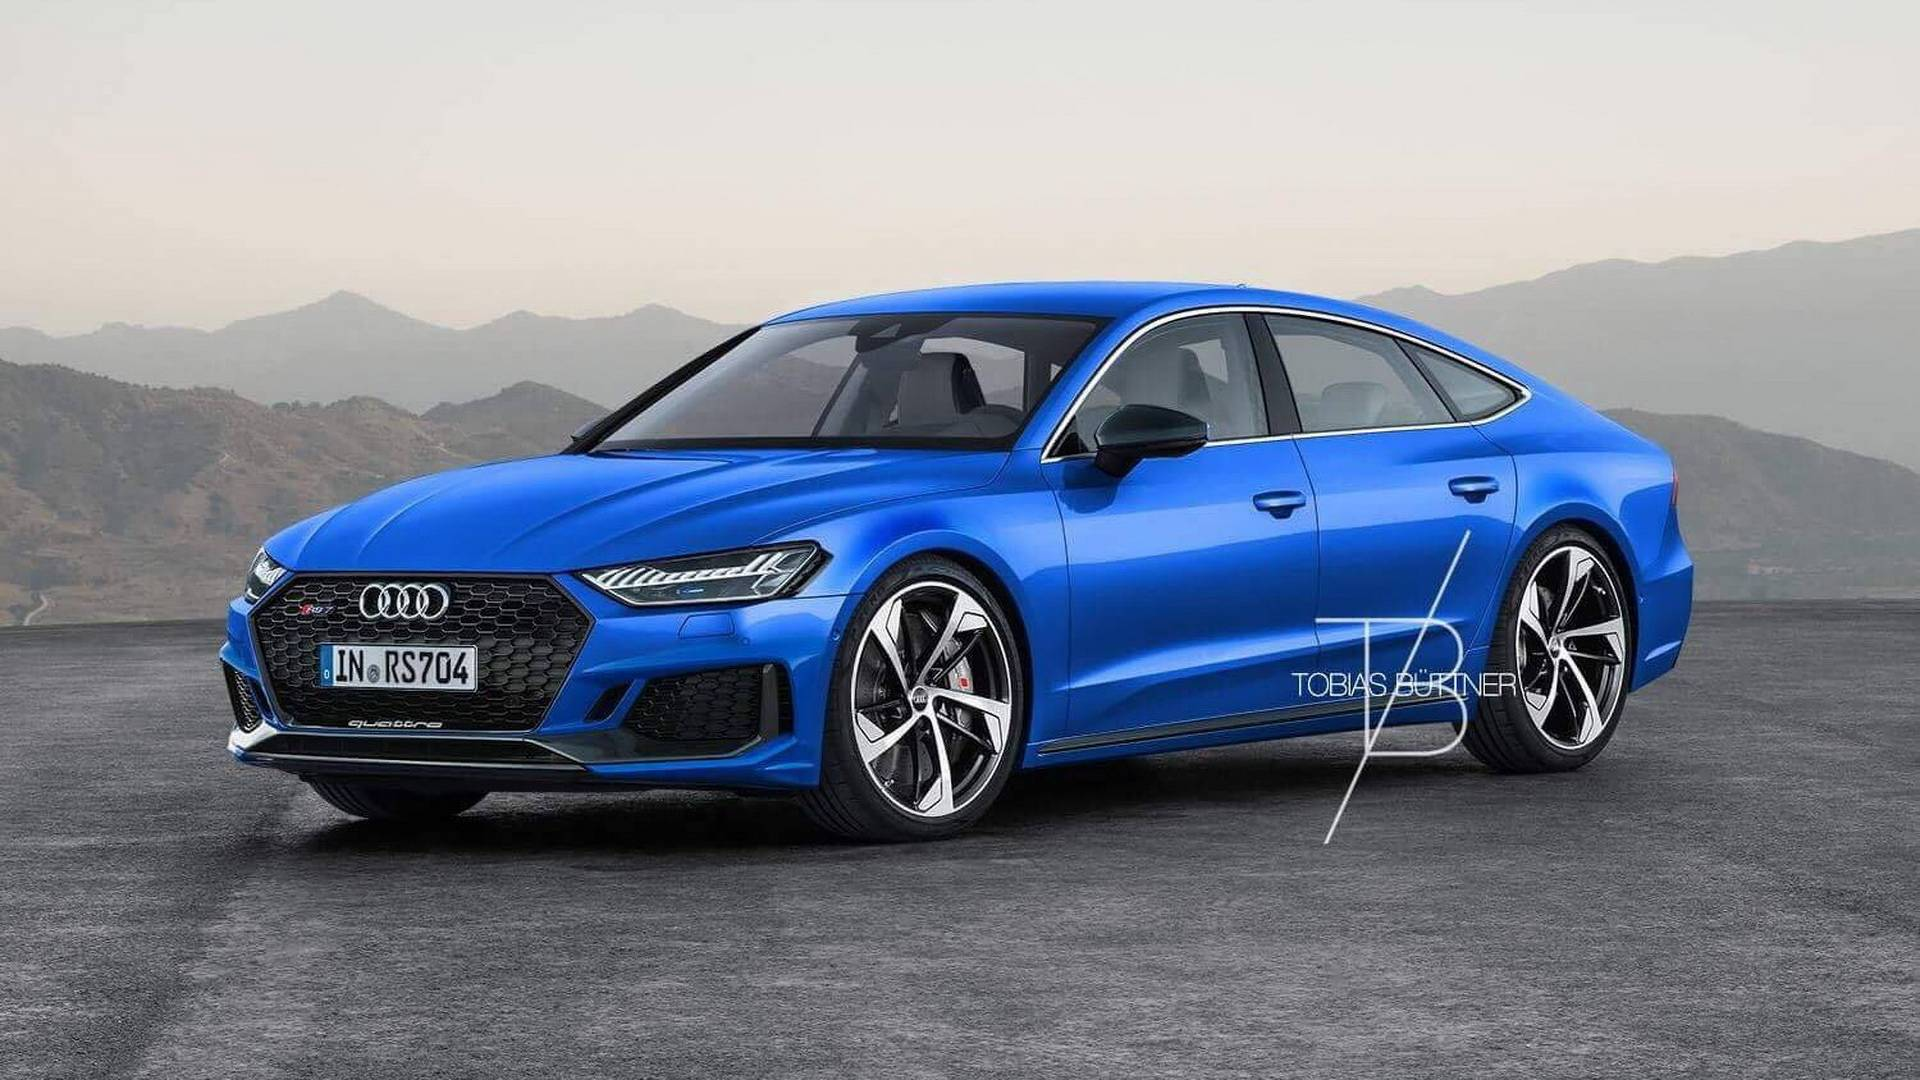 2019 Audi Rs7 Rendered Could Come With 700 Hp Hybrid